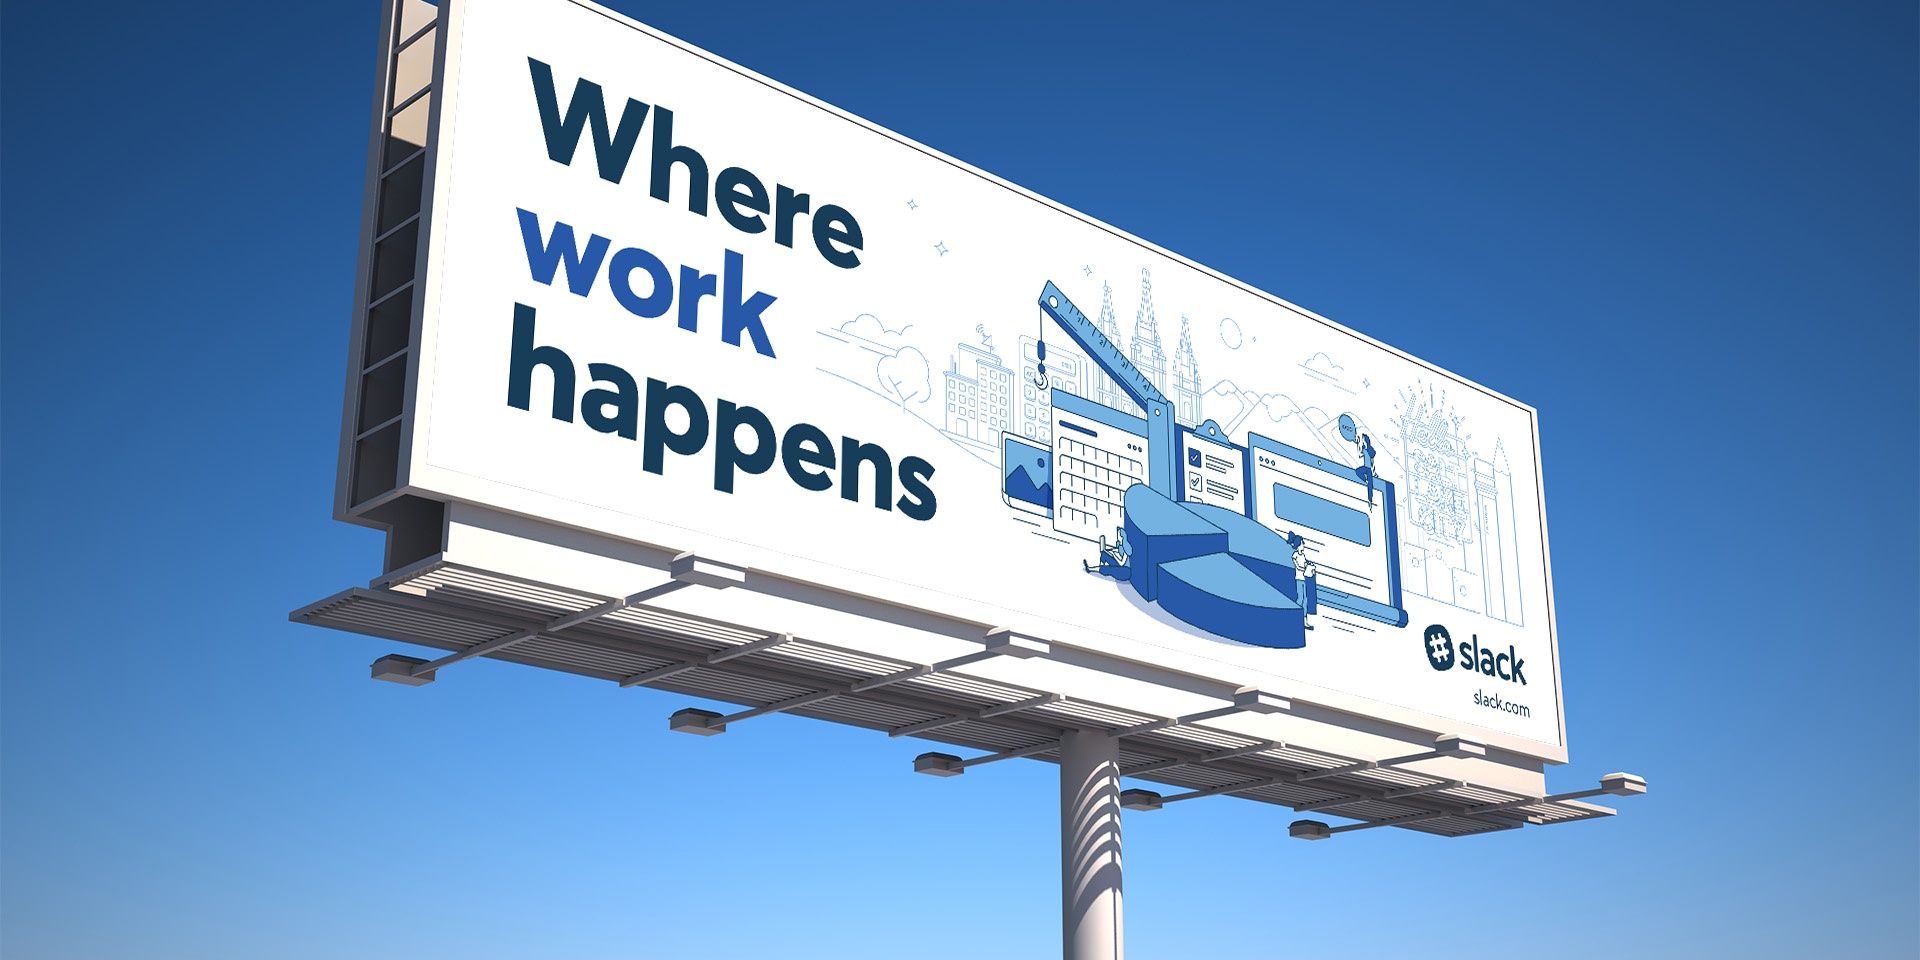 Slack Where Work happens Salt Lake City billboard with custom illustrations specific to the city.